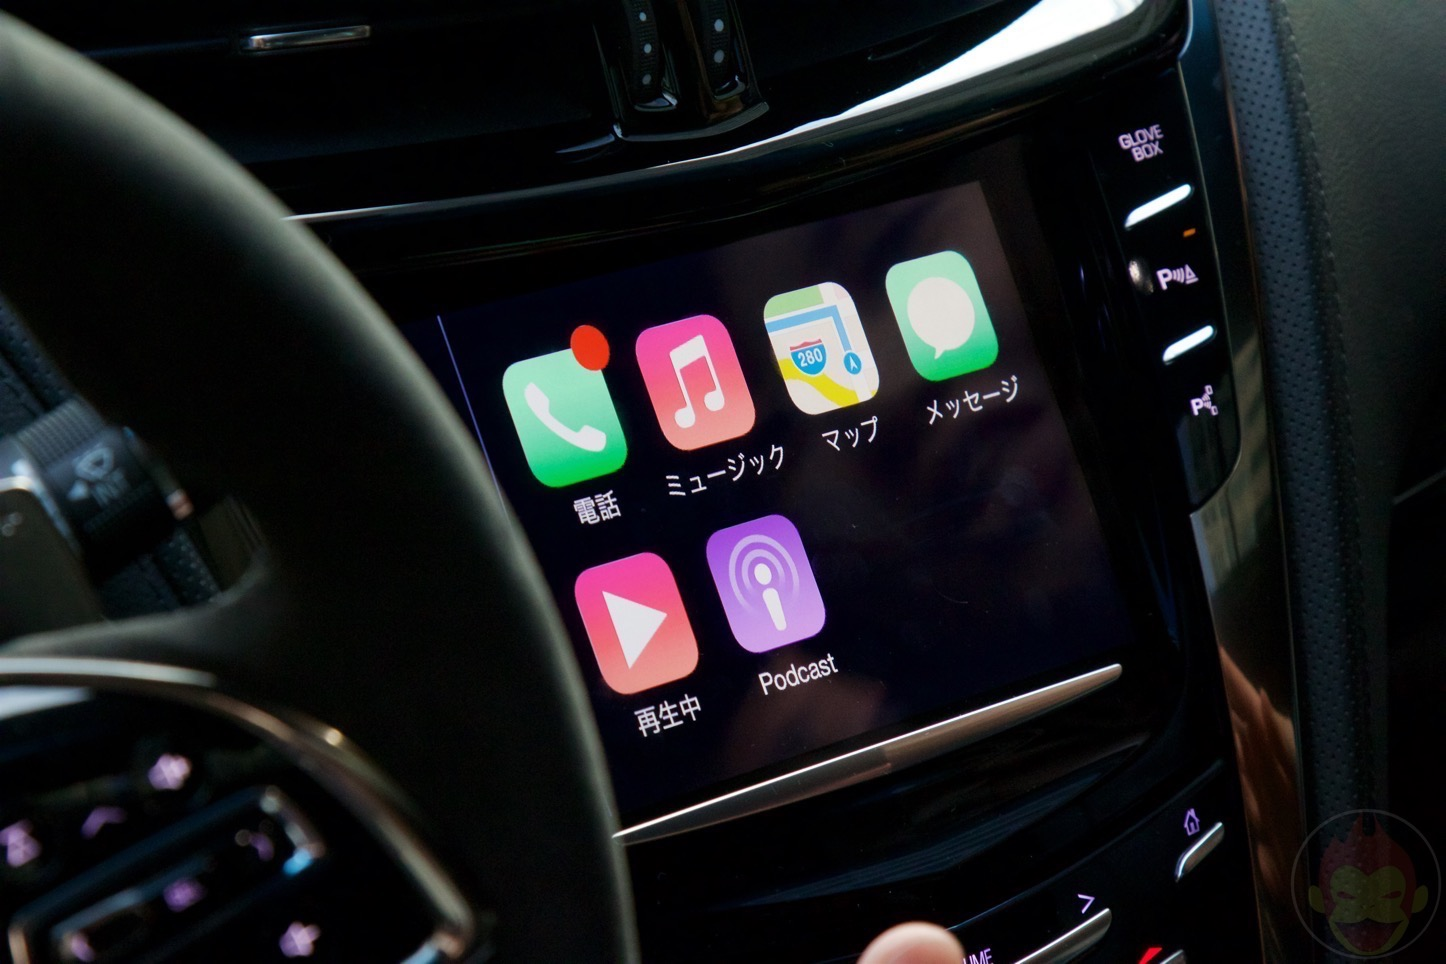 GM-cadillac-chevrolet-carplay-04.jpg